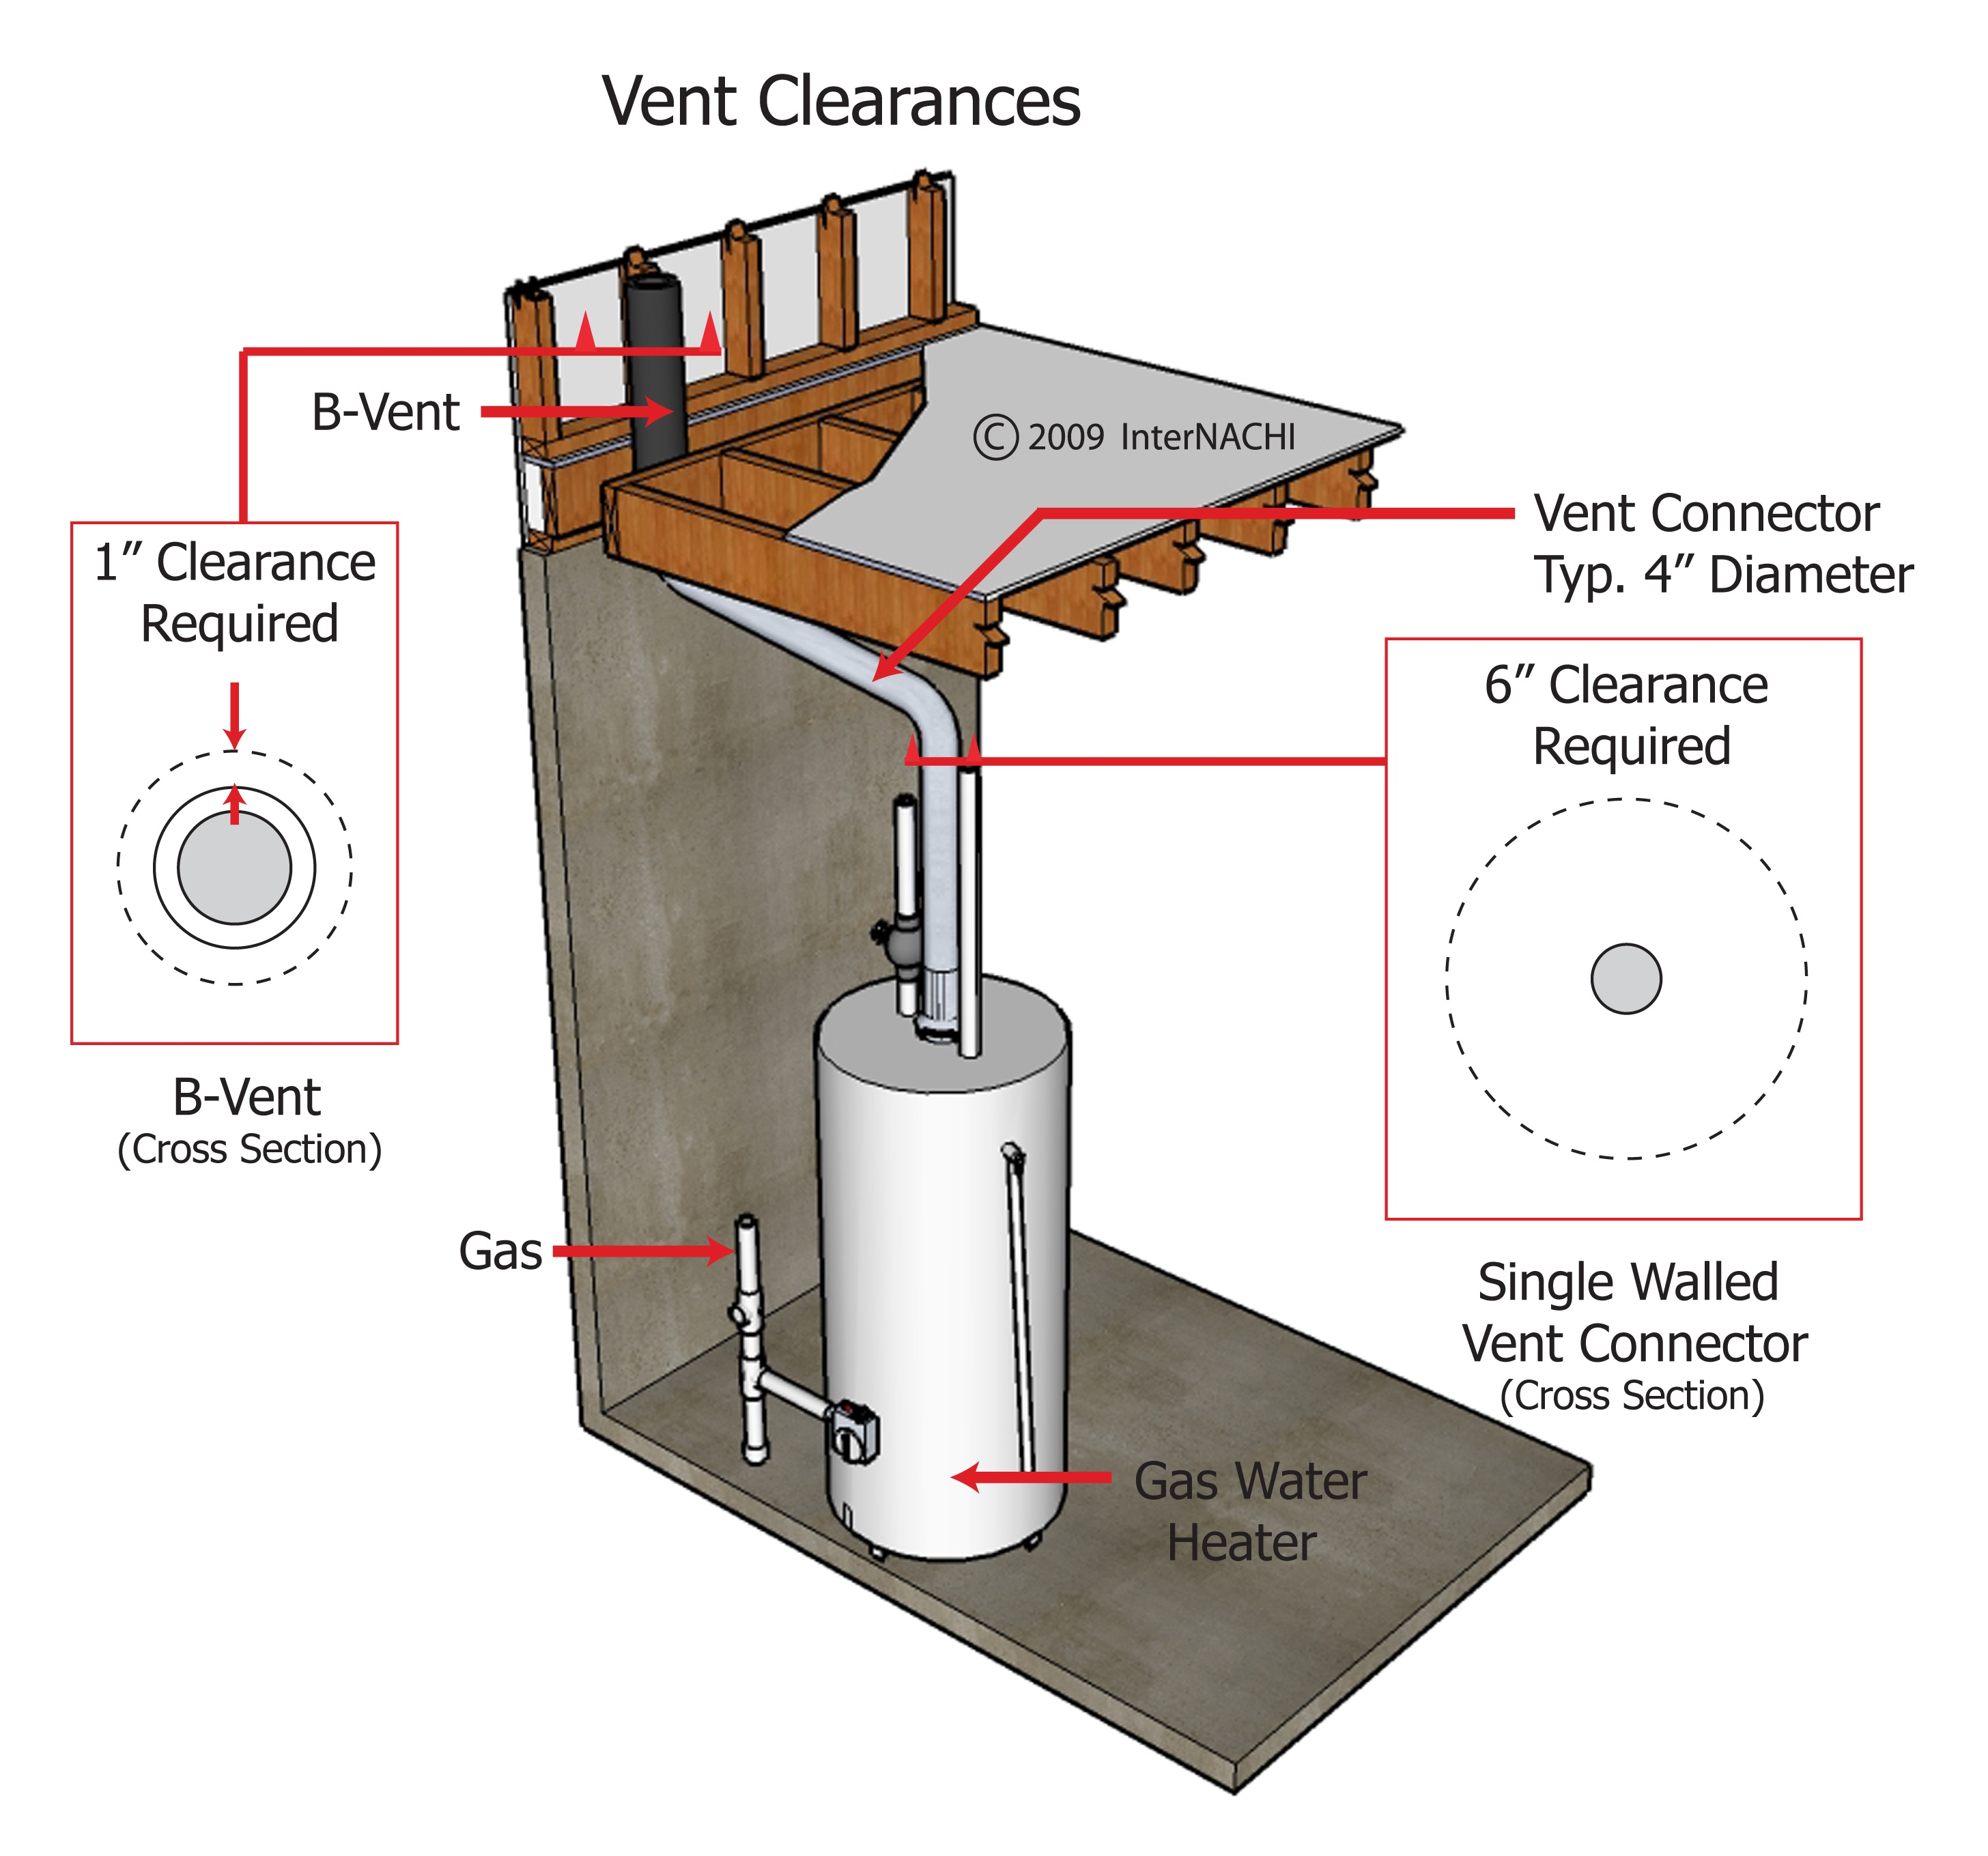 Vent clearances of a gas water heater.